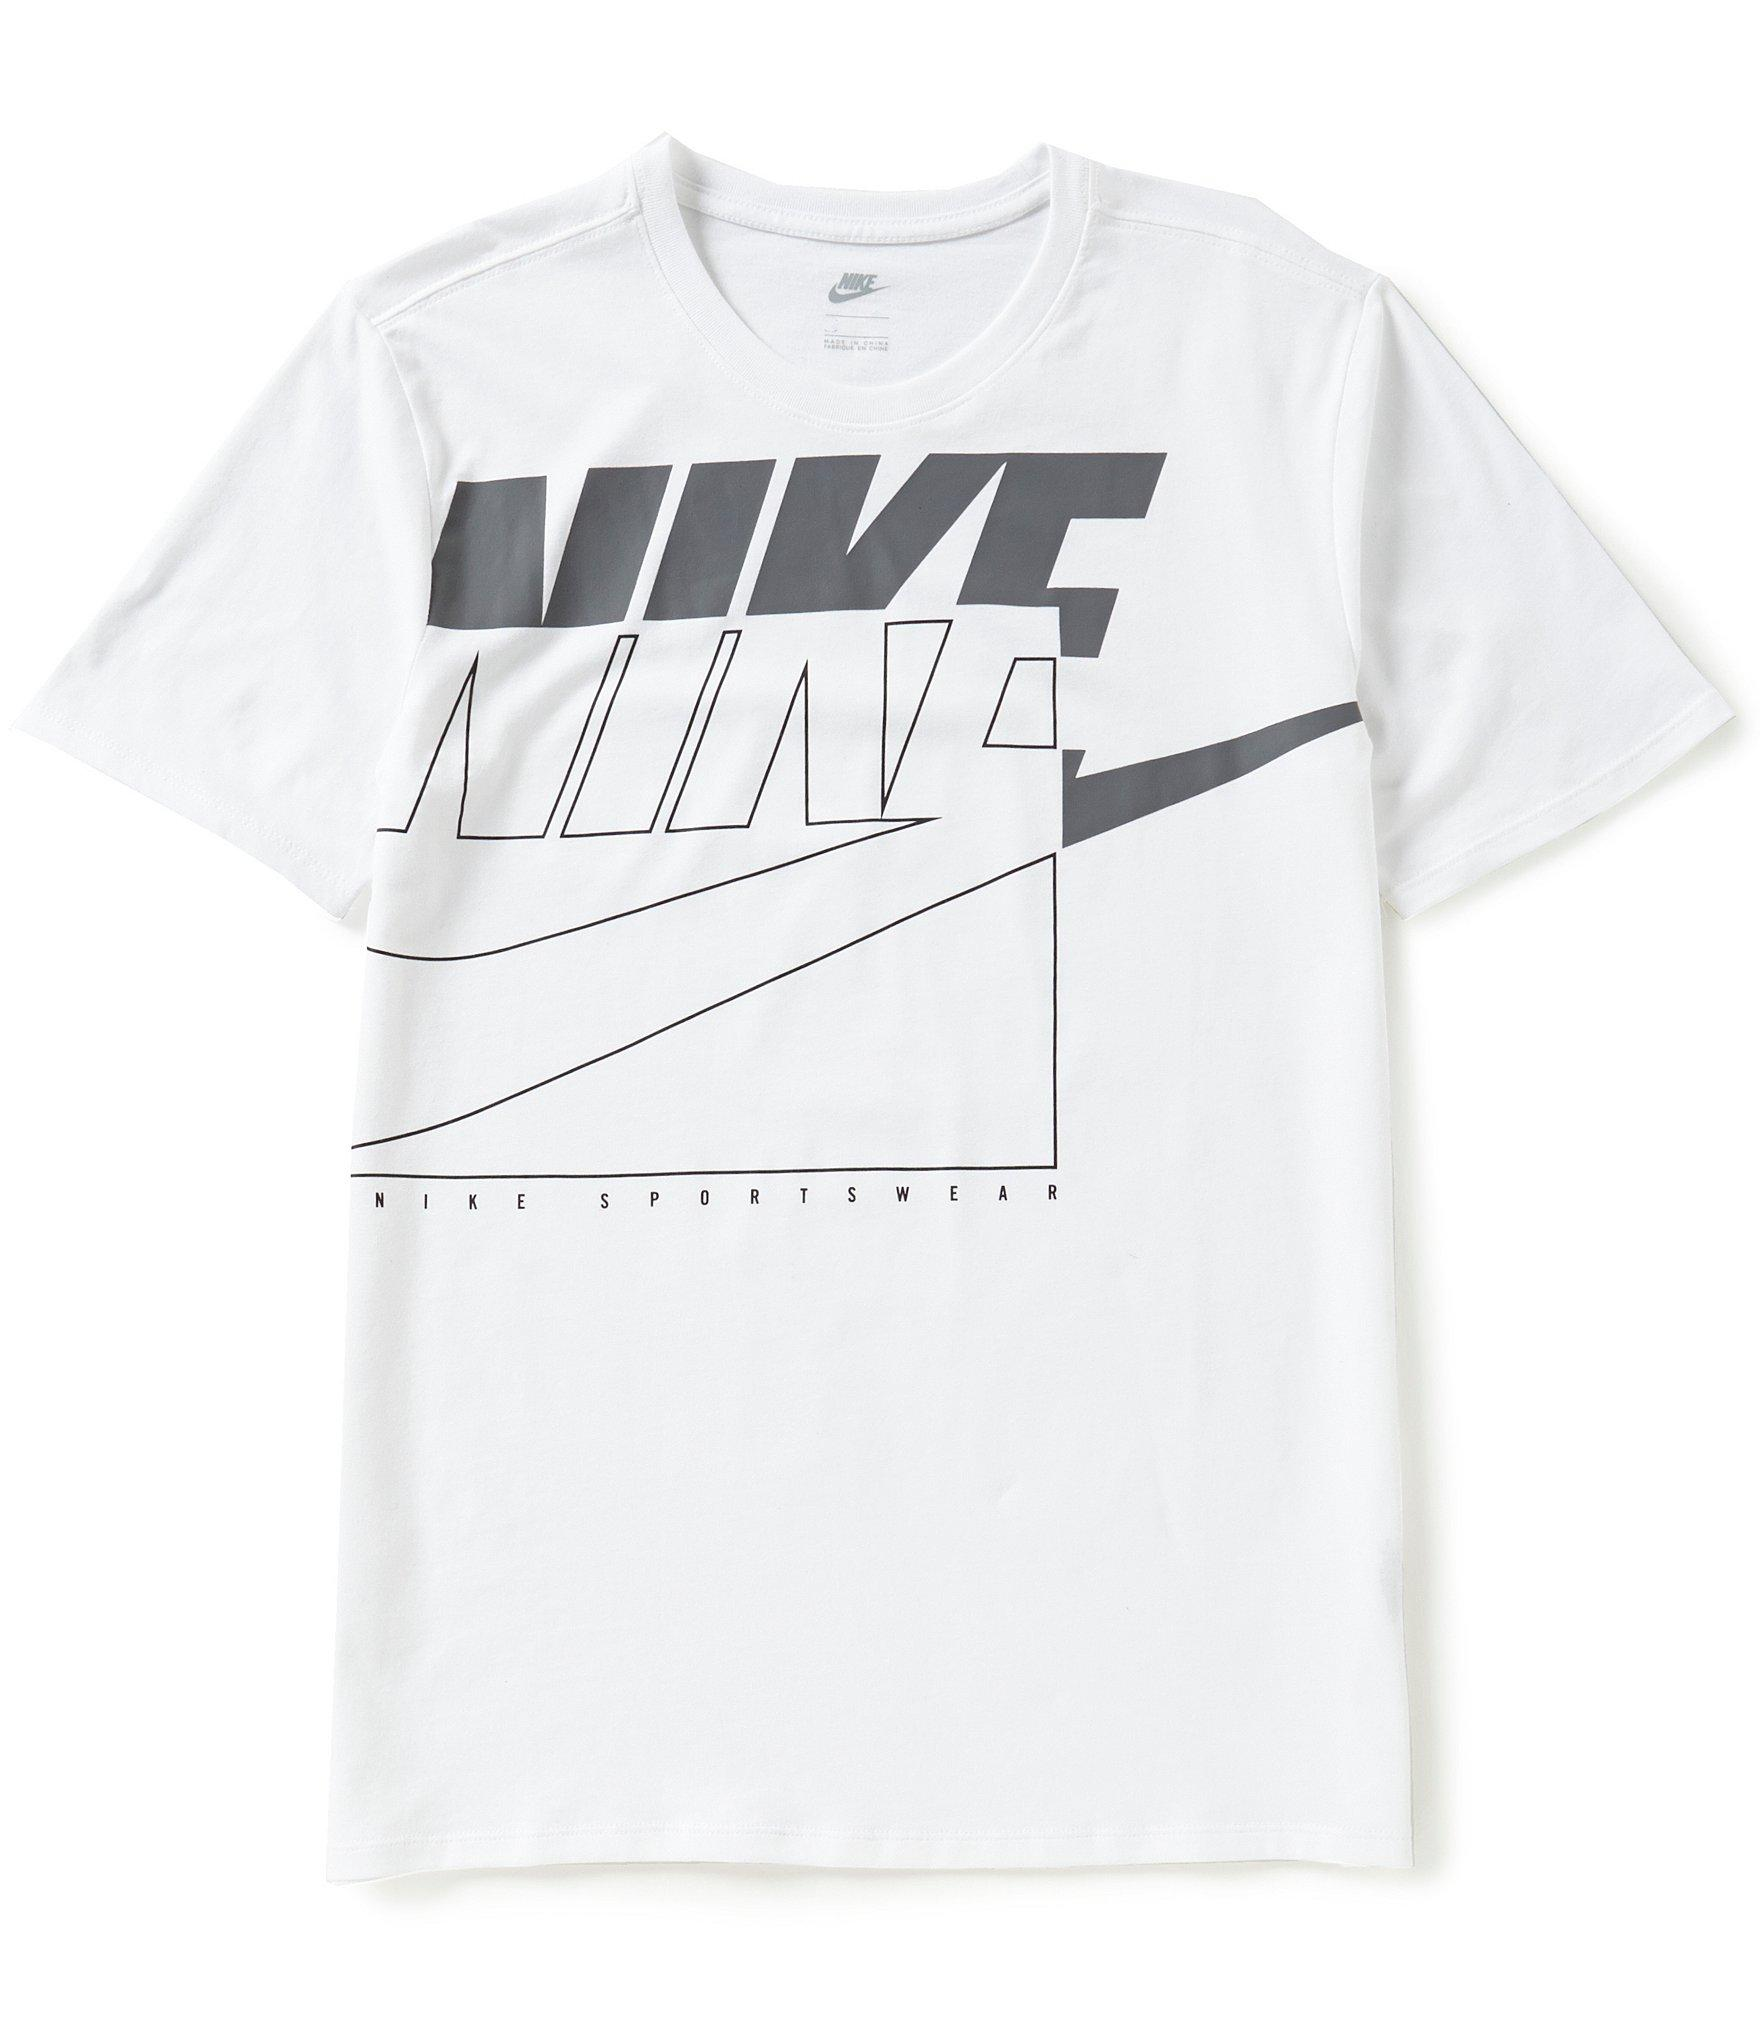 Lyst - Nike Futura Short-sleeve Crewneck Graphic Tee in White for Men 6e4ba9e1bcd